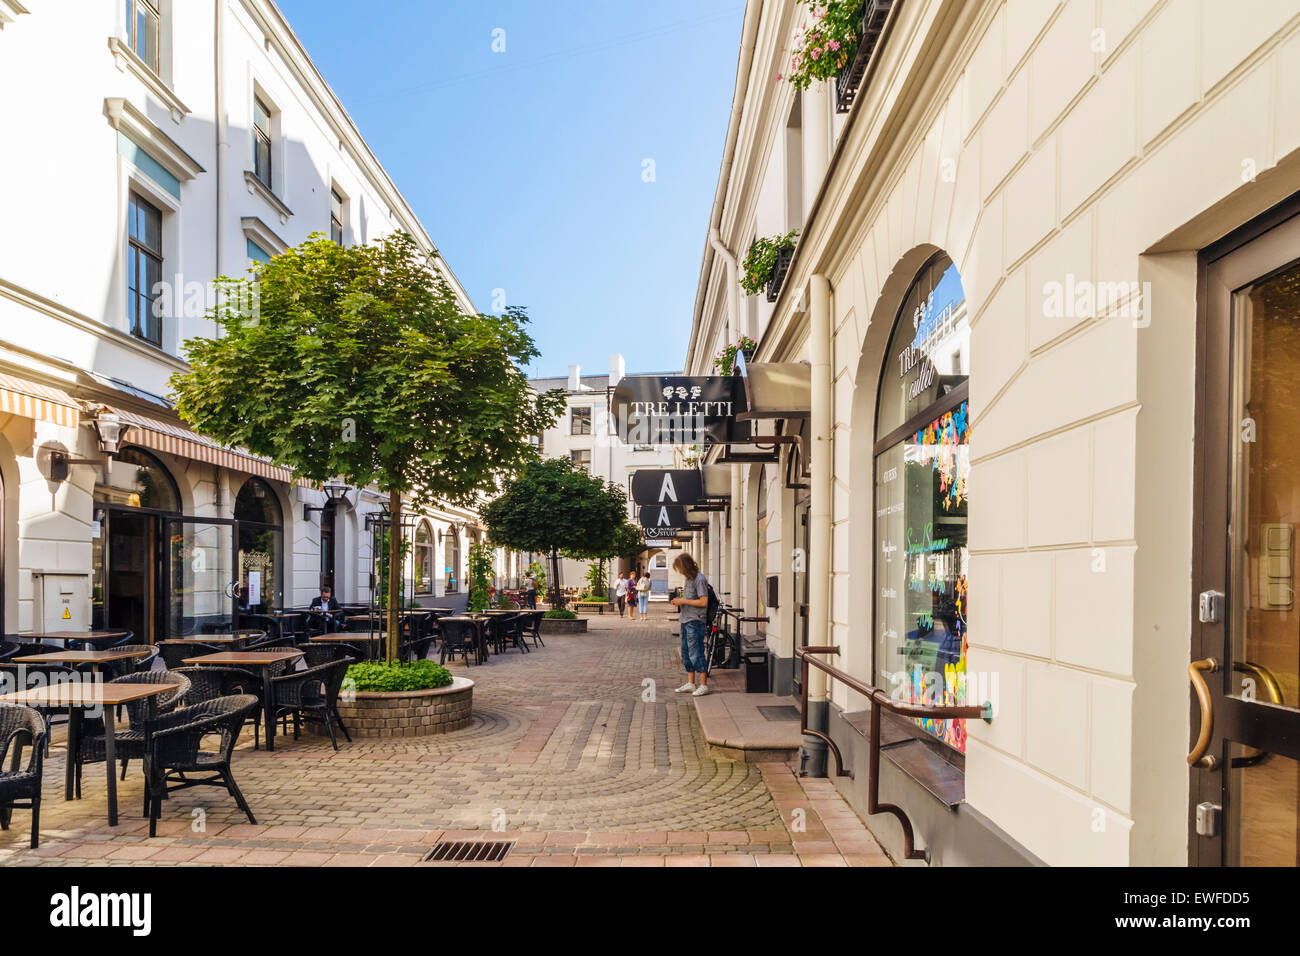 Bergs Bazaar, courtyard with shops, Riga Latvia - Stock Image